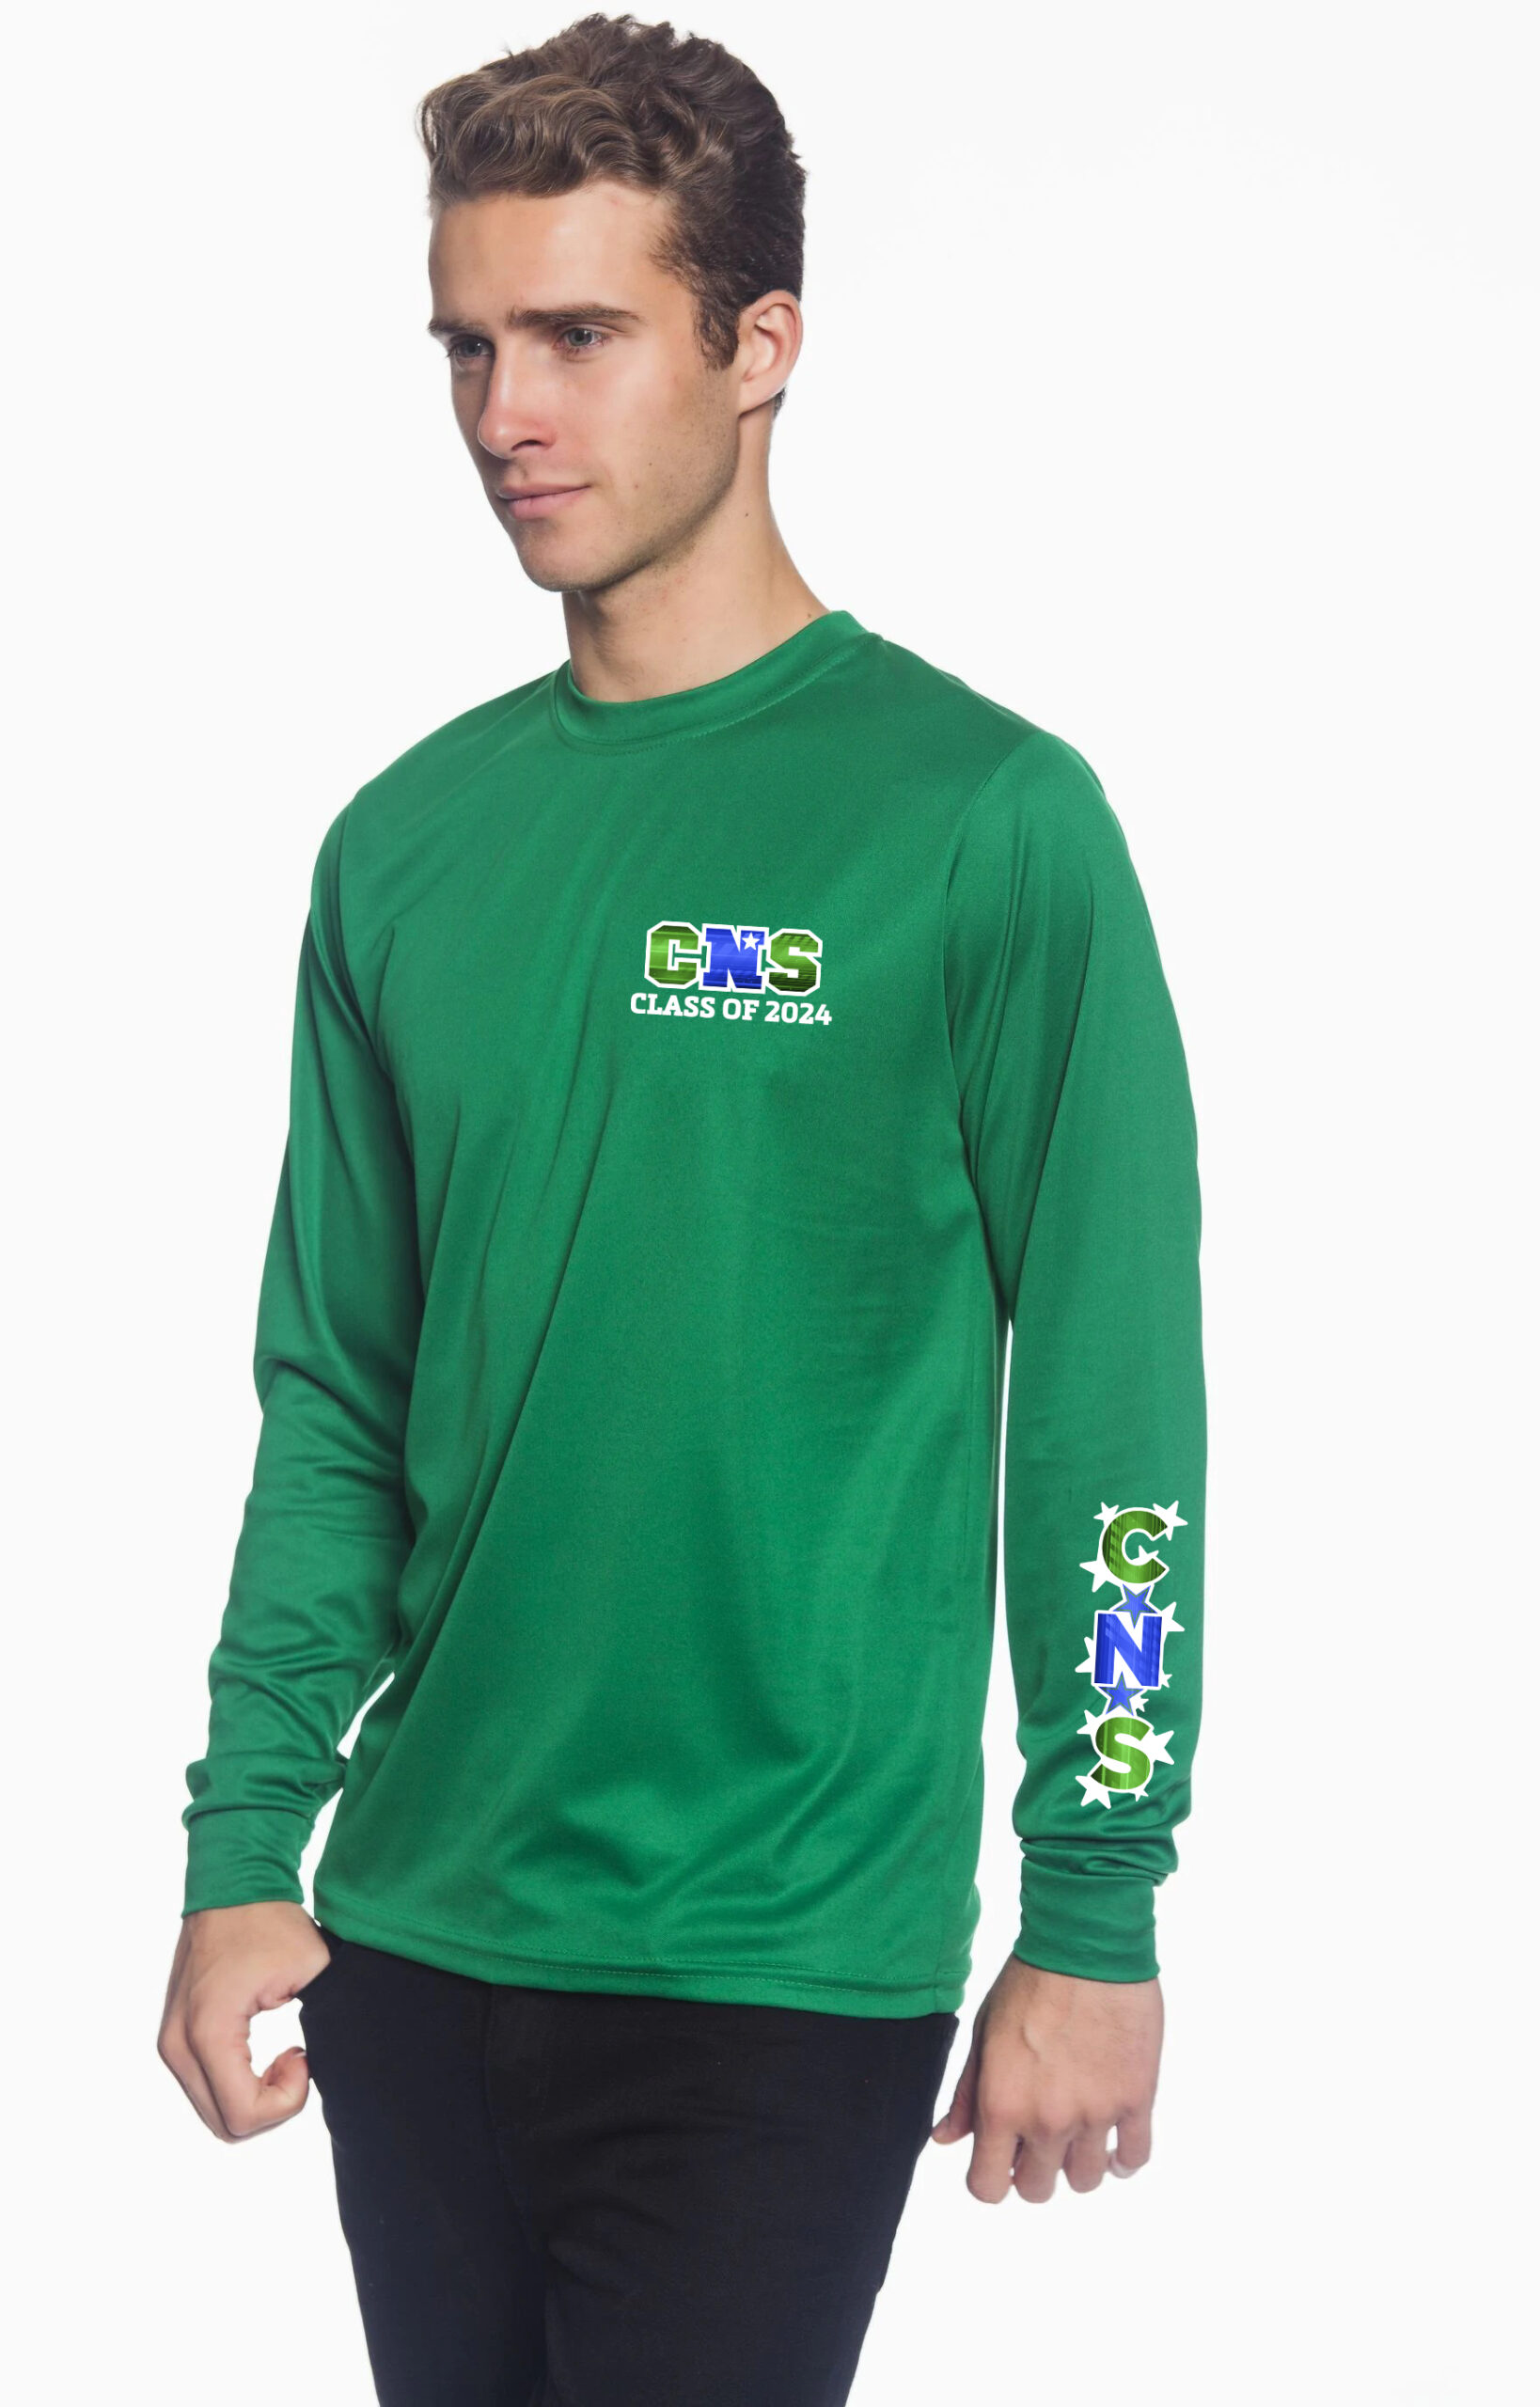 Athletic Long Sleeve Shirt CNS Logo on Arm